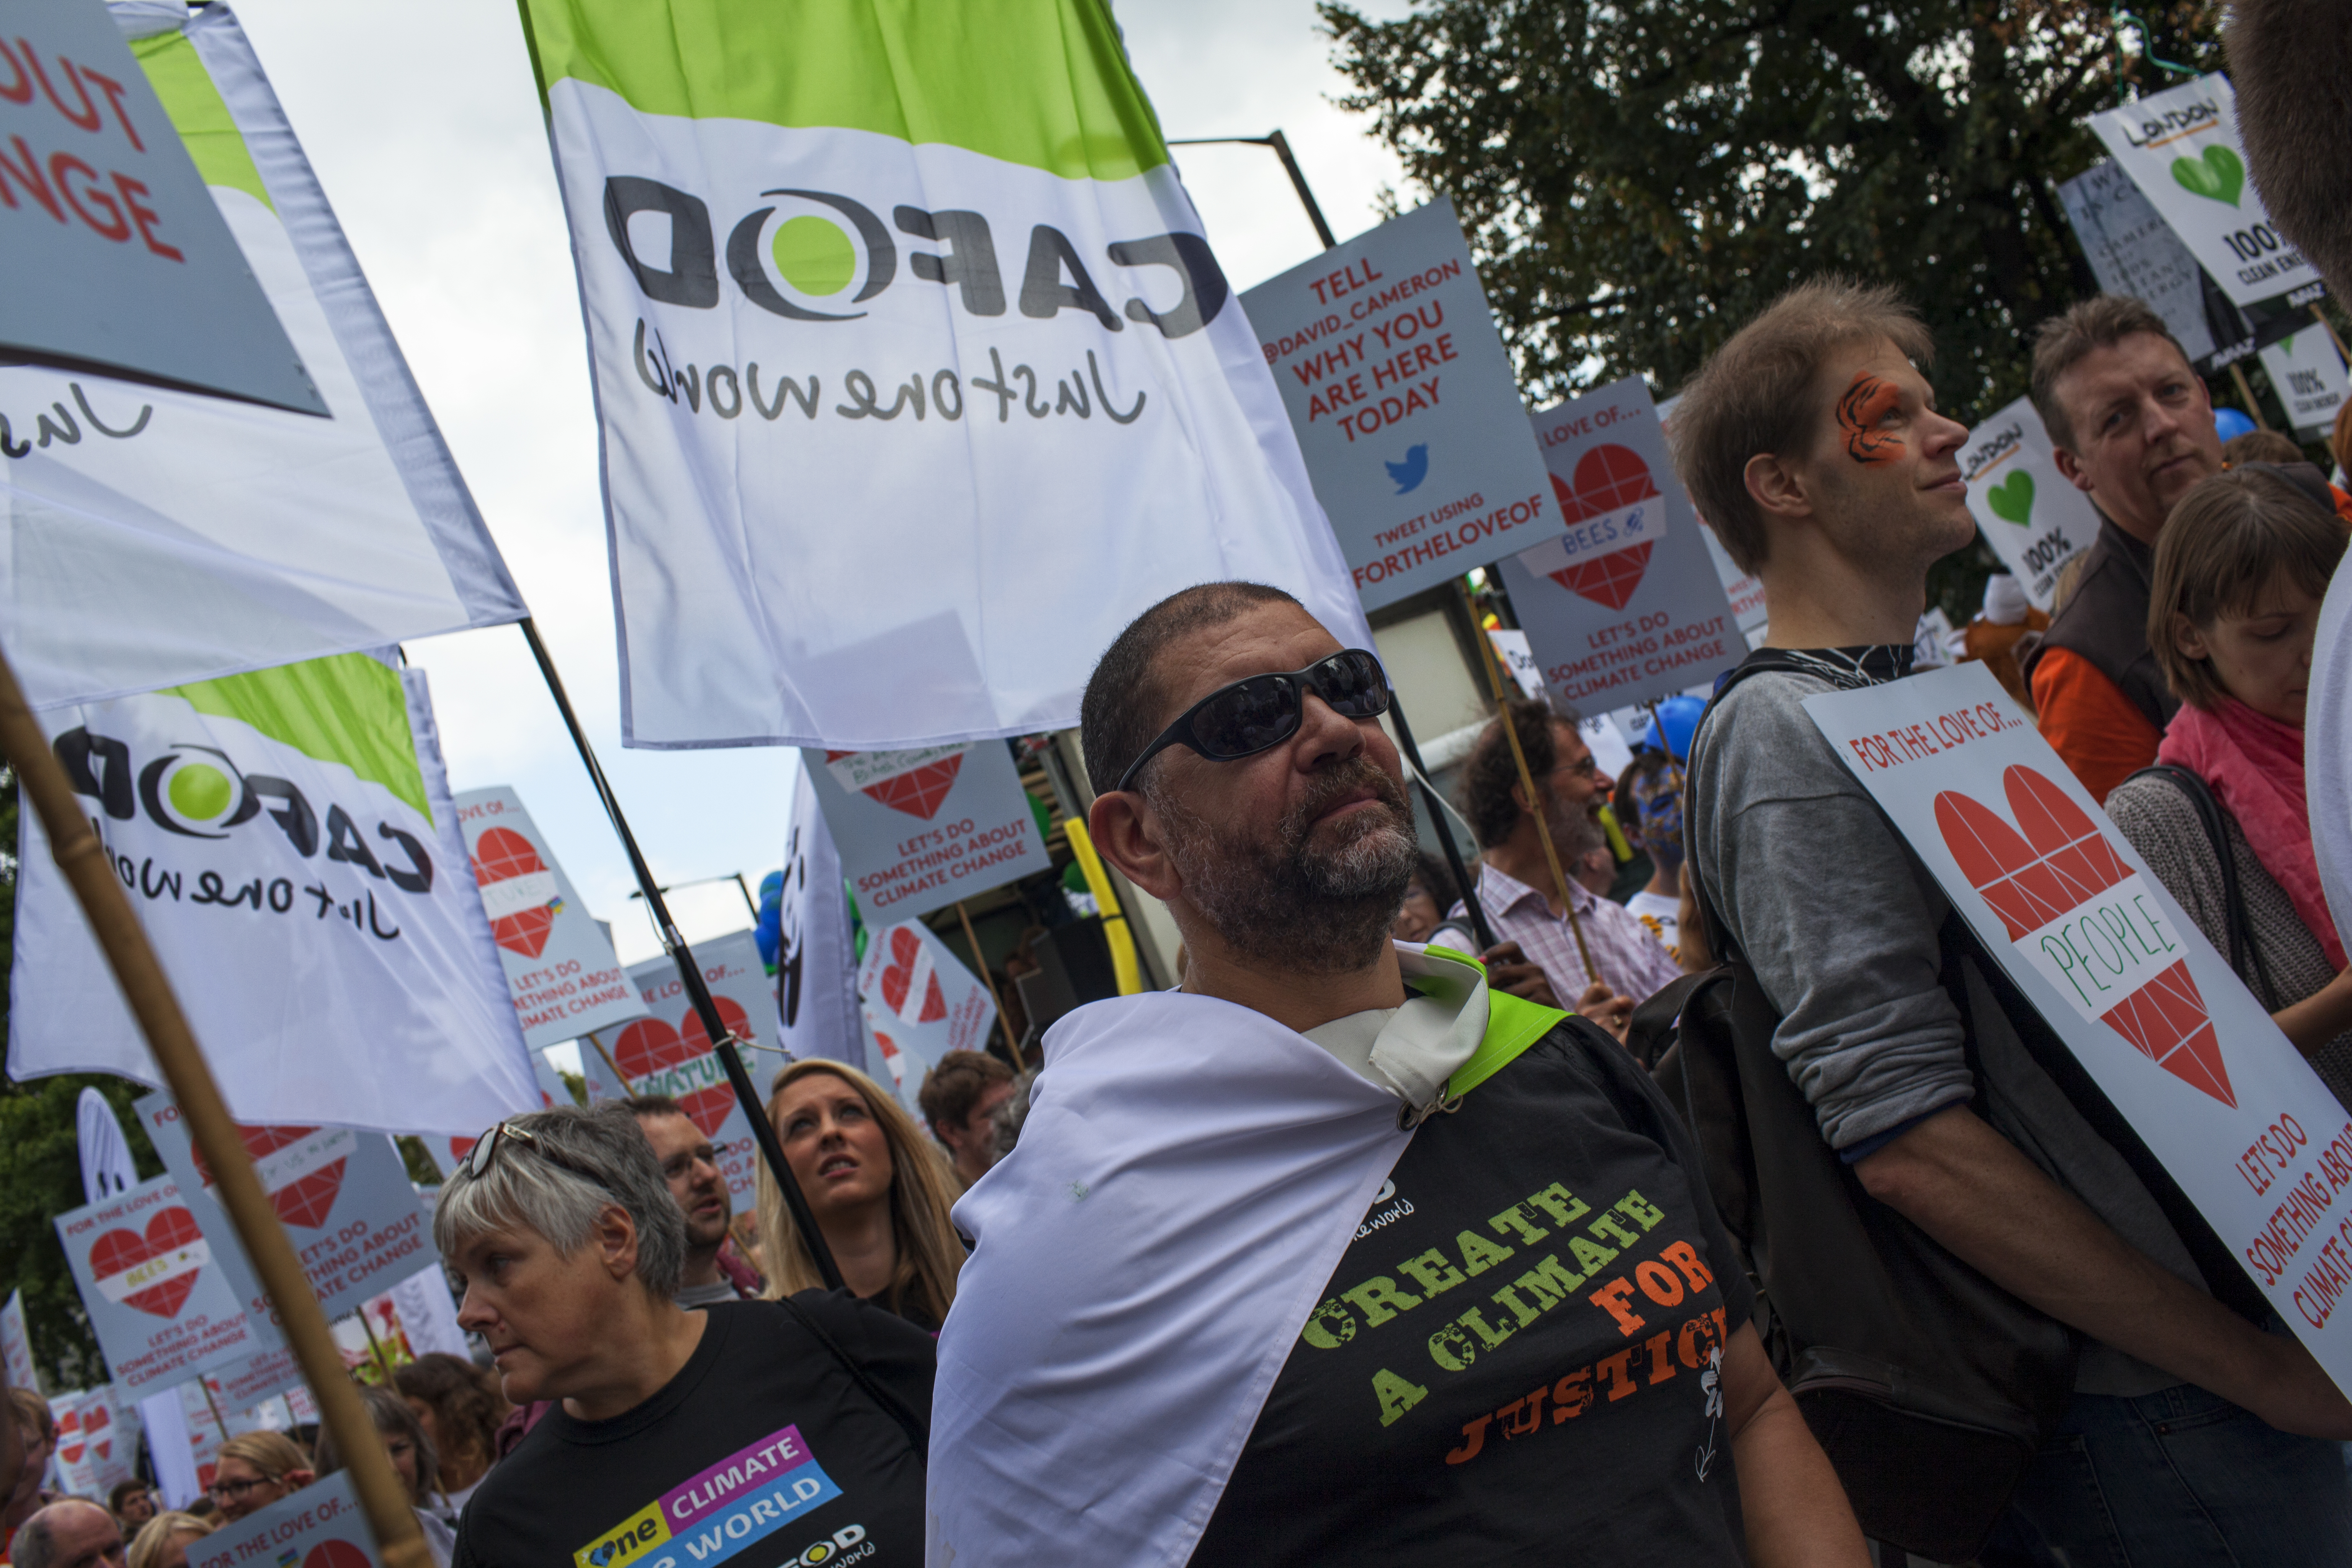 CAFOD supporters join a march against Climate Change